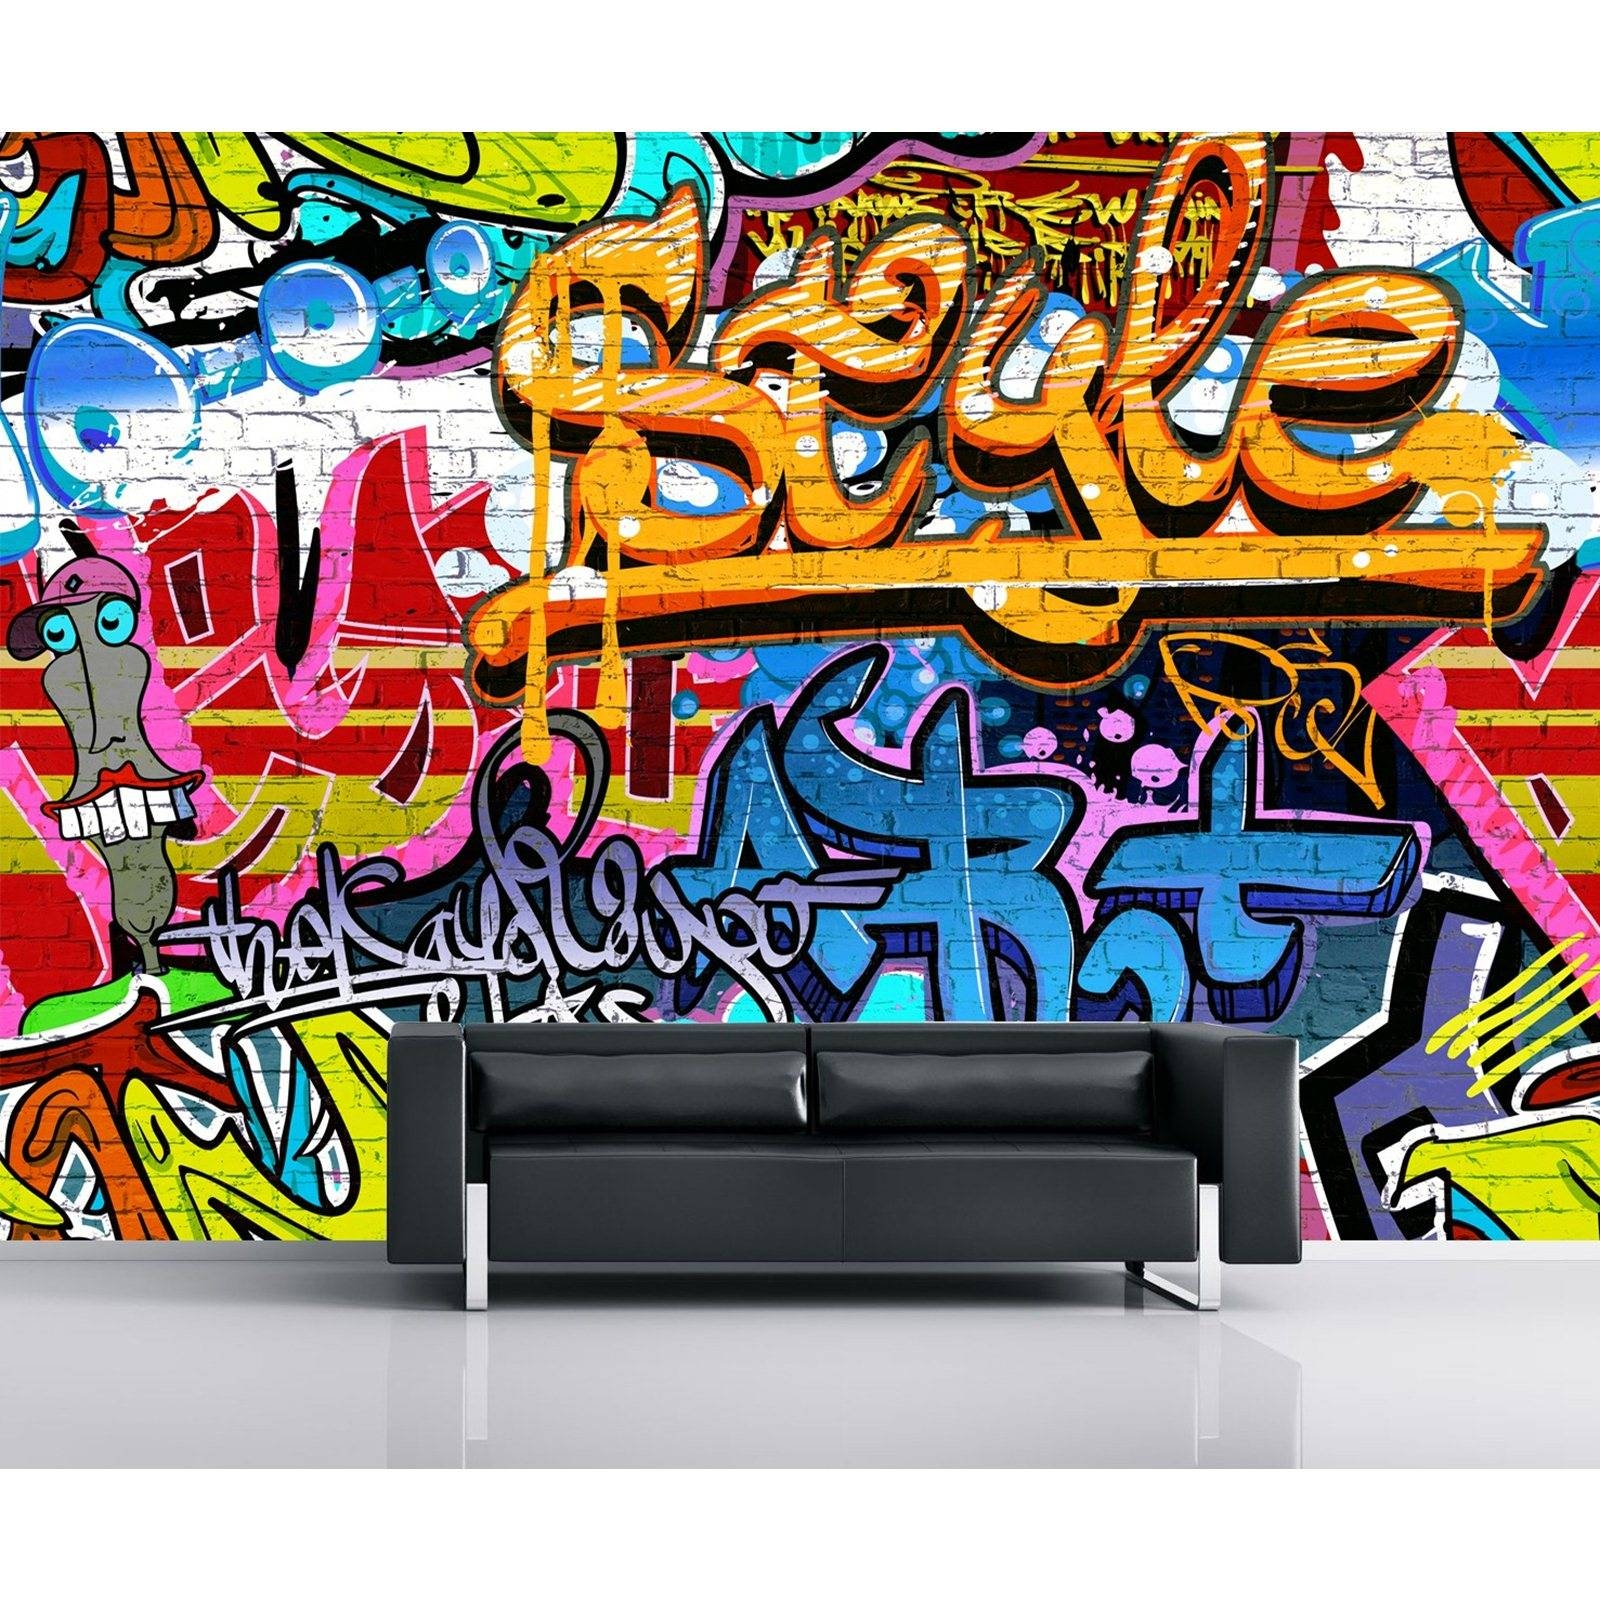 Ergonomic Personalized Graffiti Wall Decals Stock Photo Graffiti For Most Current Personalized Graffiti Wall Art (View 6 of 30)